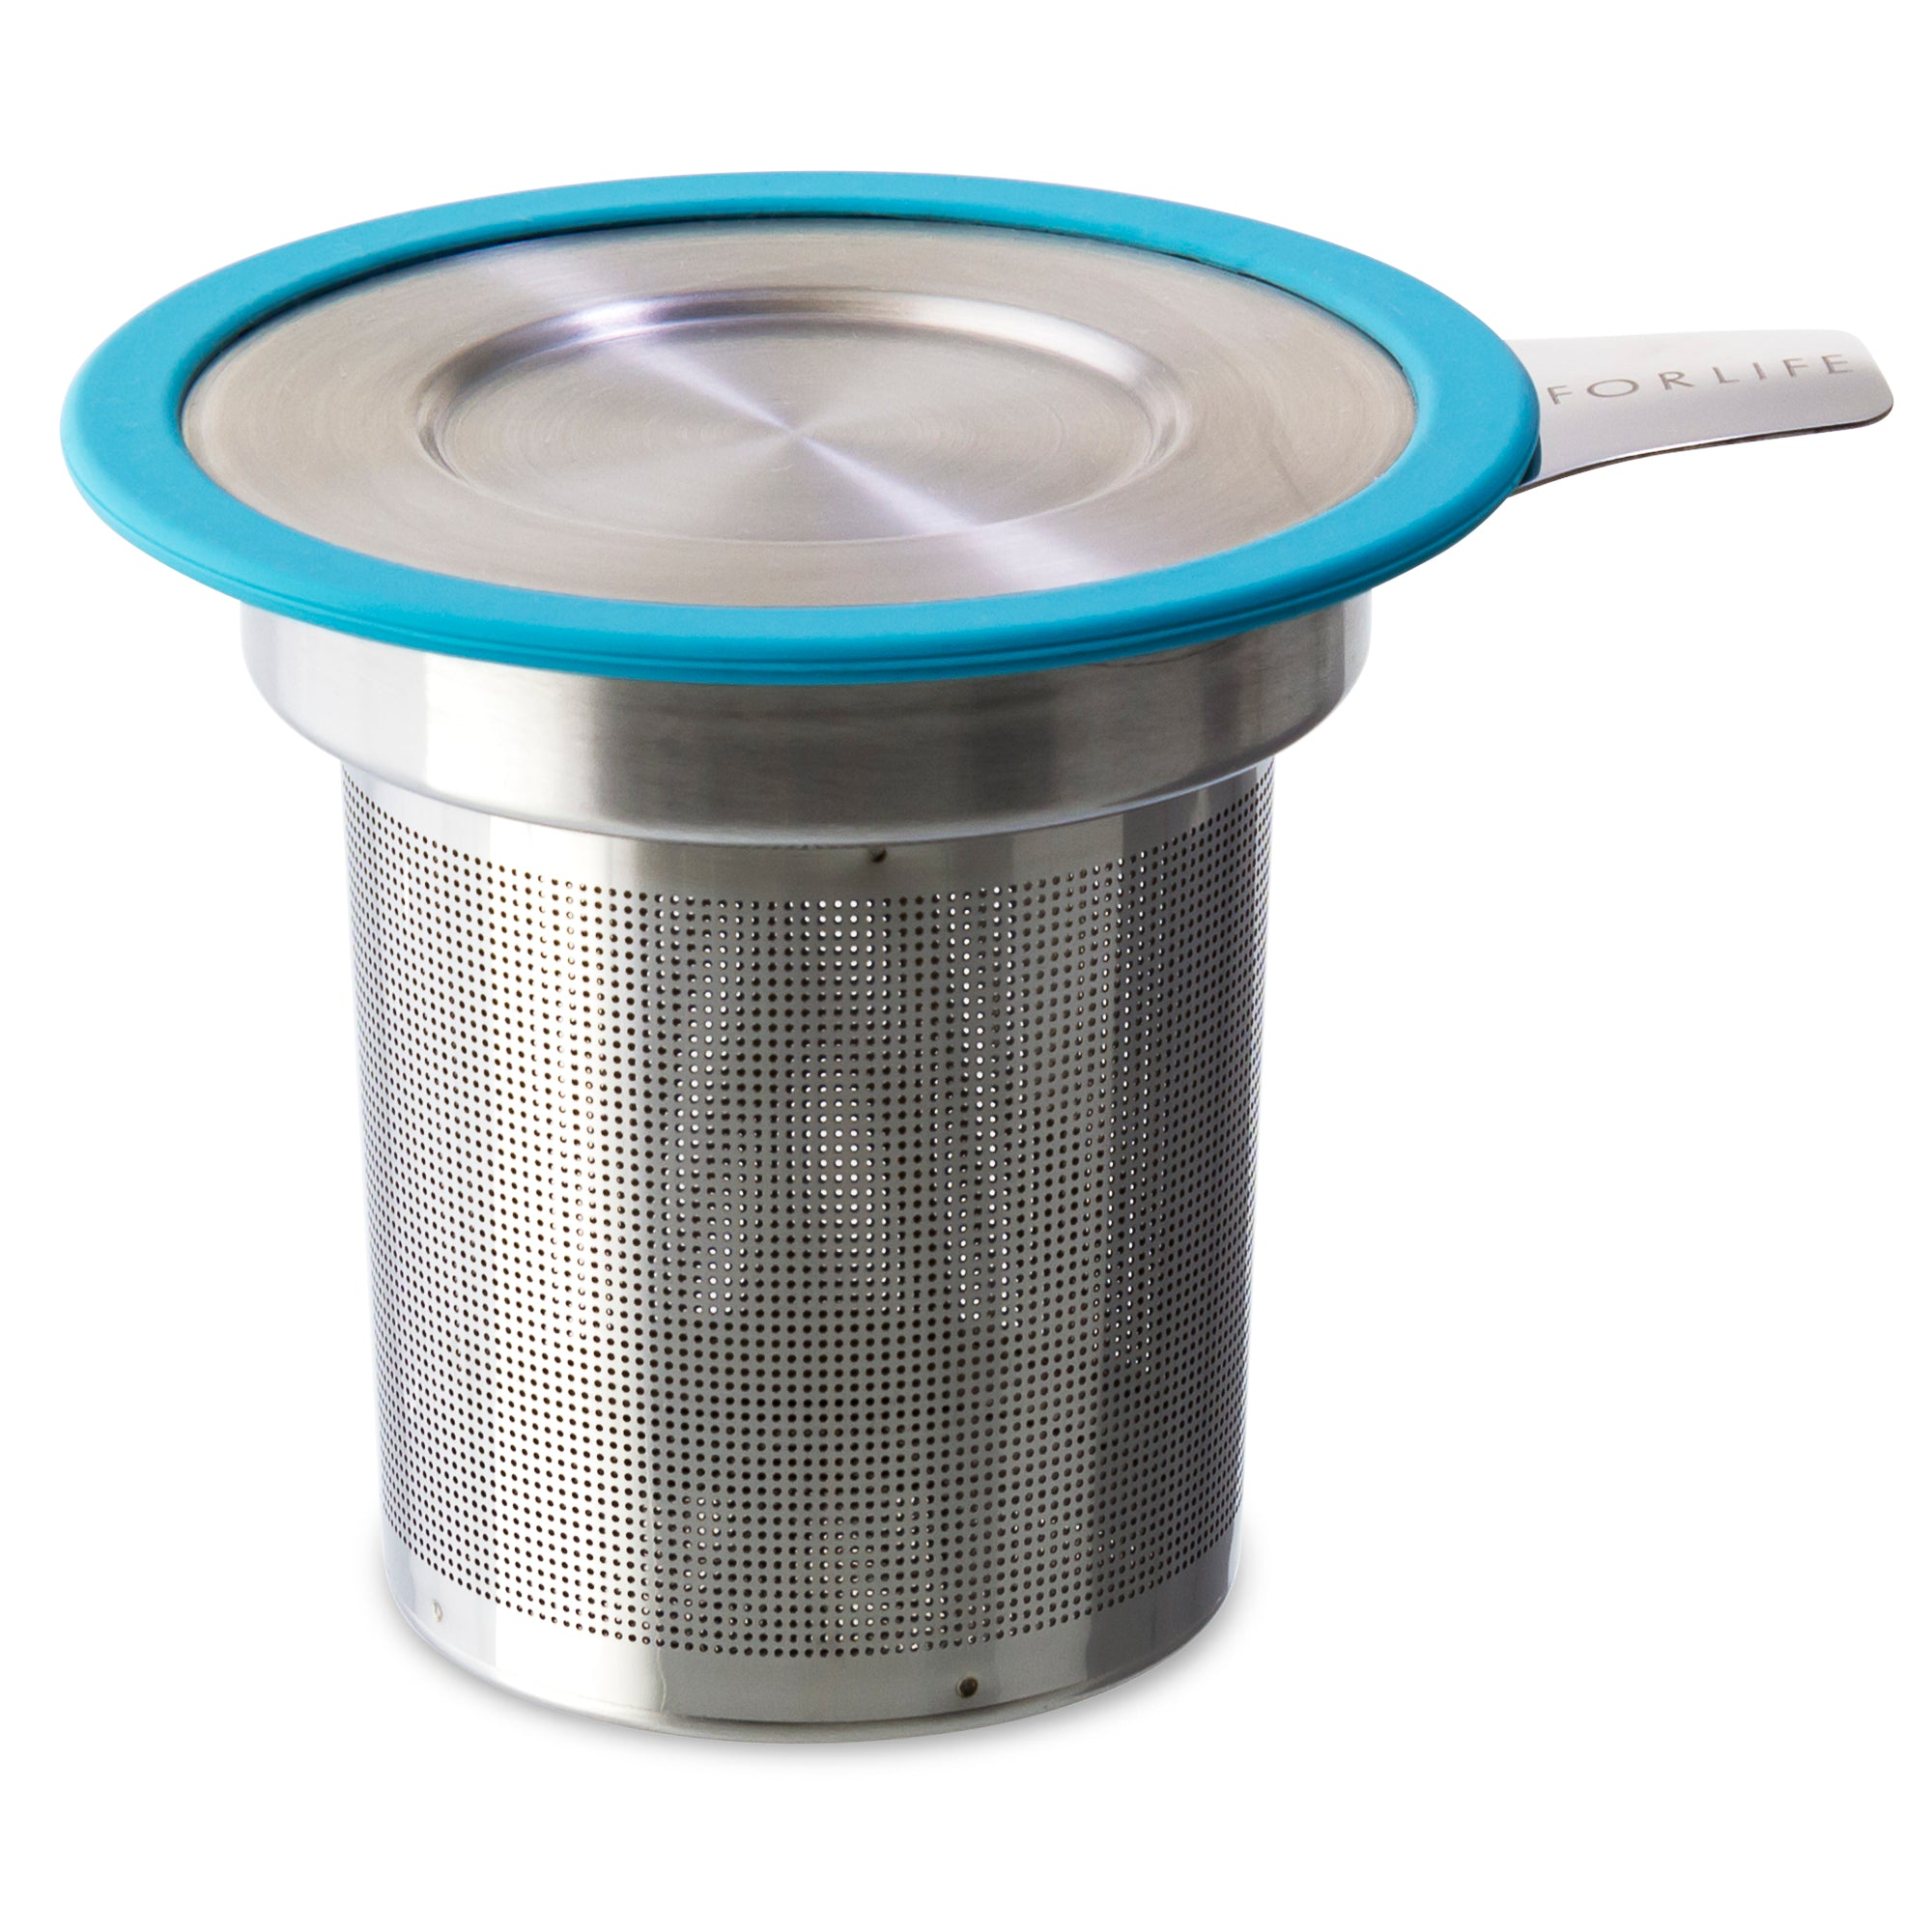 Brew-in-Mug Extra-fine Tea Infuser<br>with Lid (Set of 6)